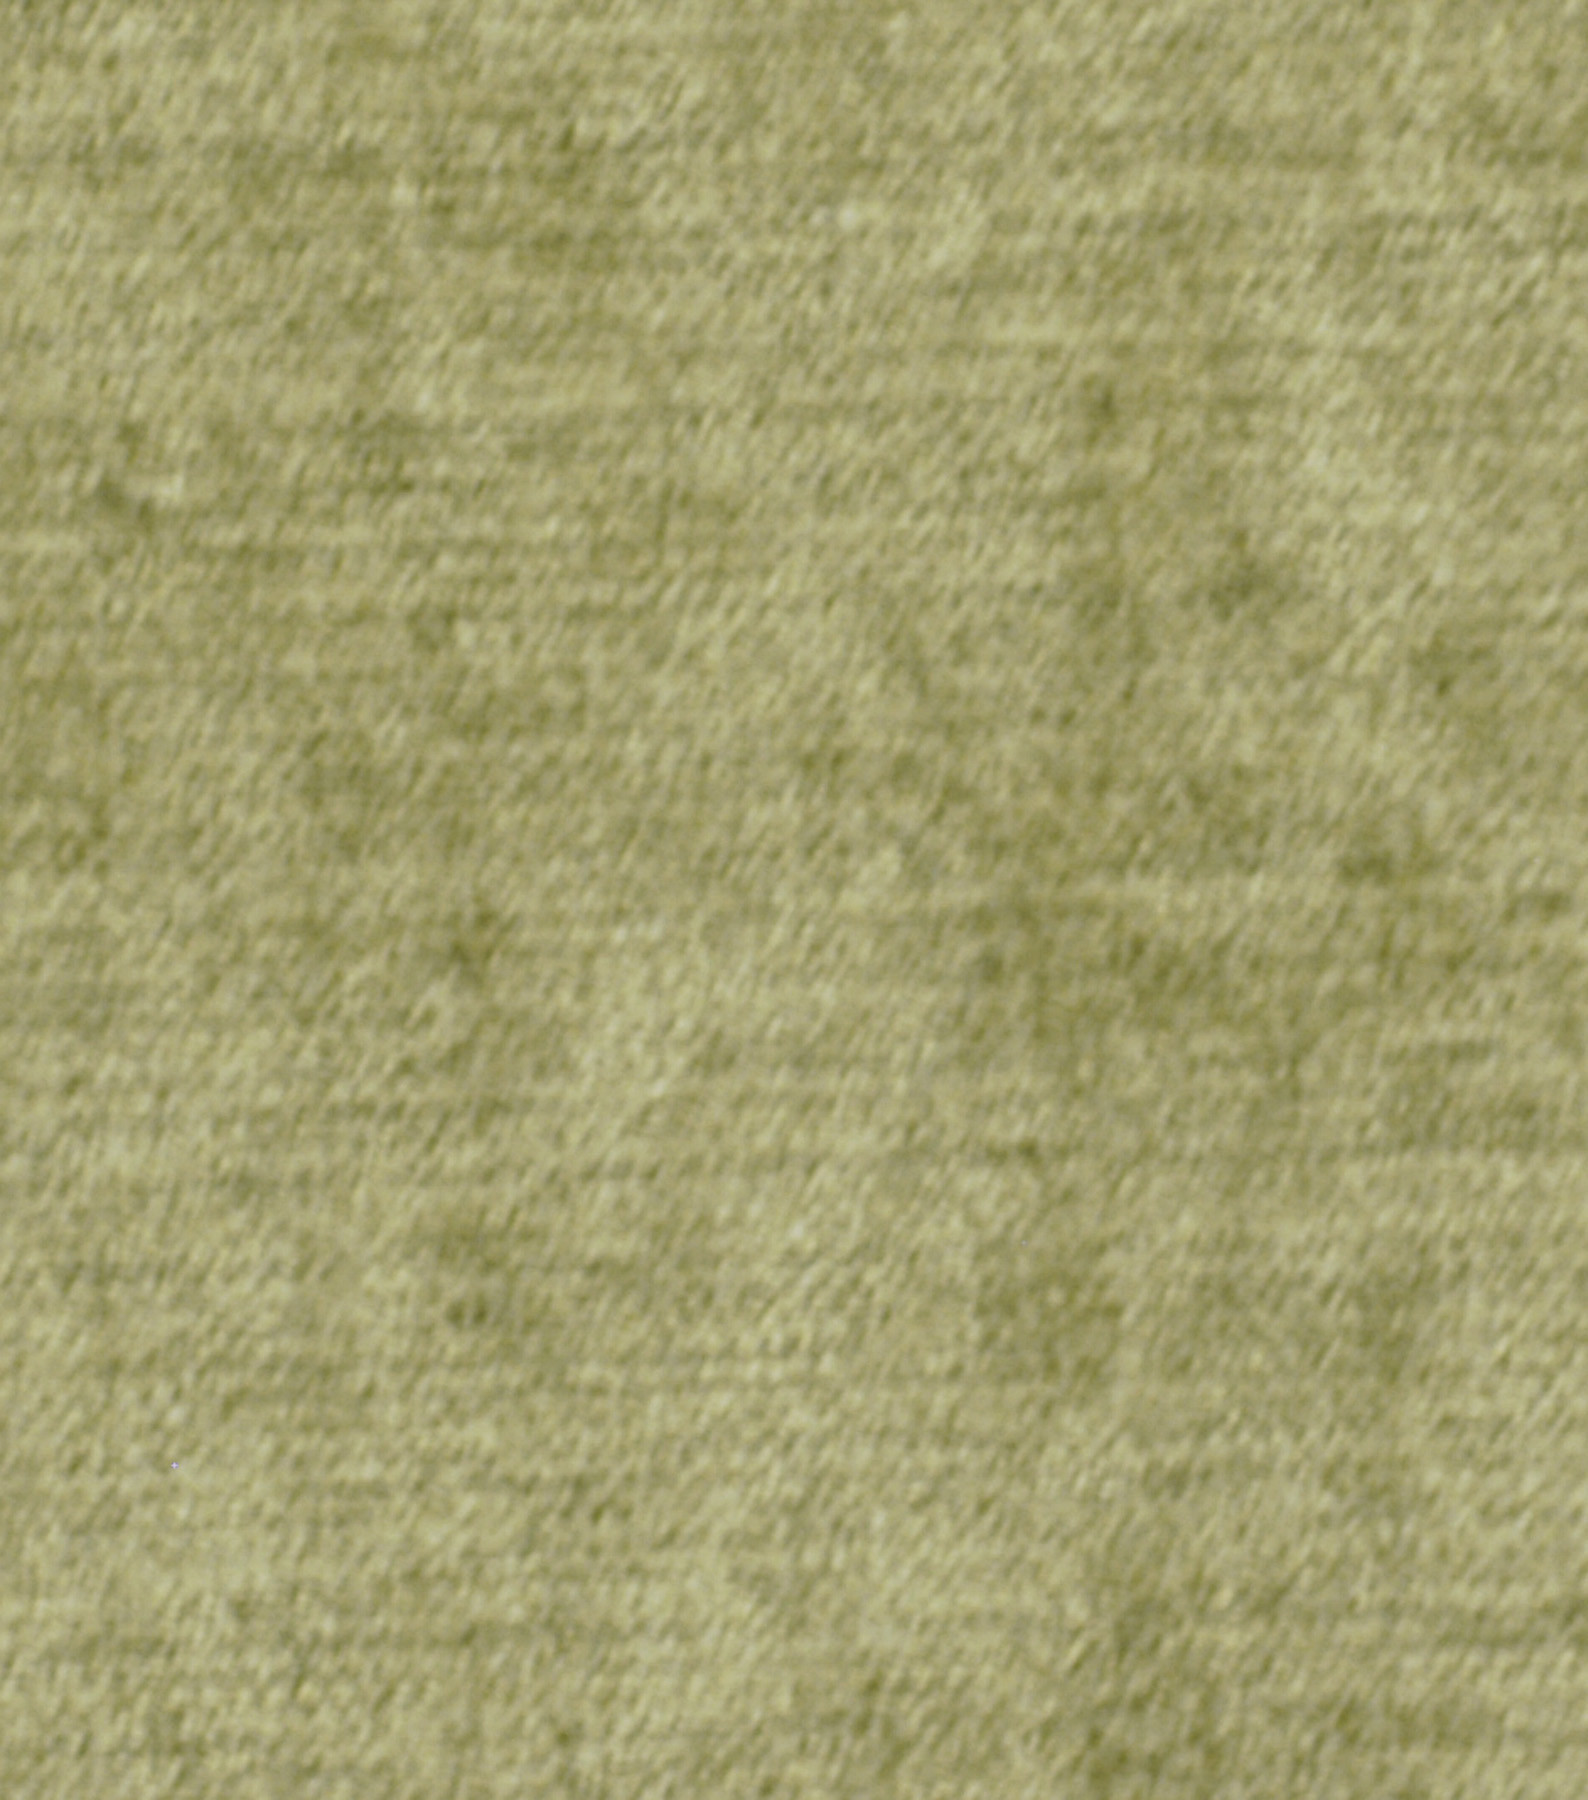 Home Decor 8\u0022x8\u0022 Fabric Swatch-Upholstery-Signature Series Illumina Khaki